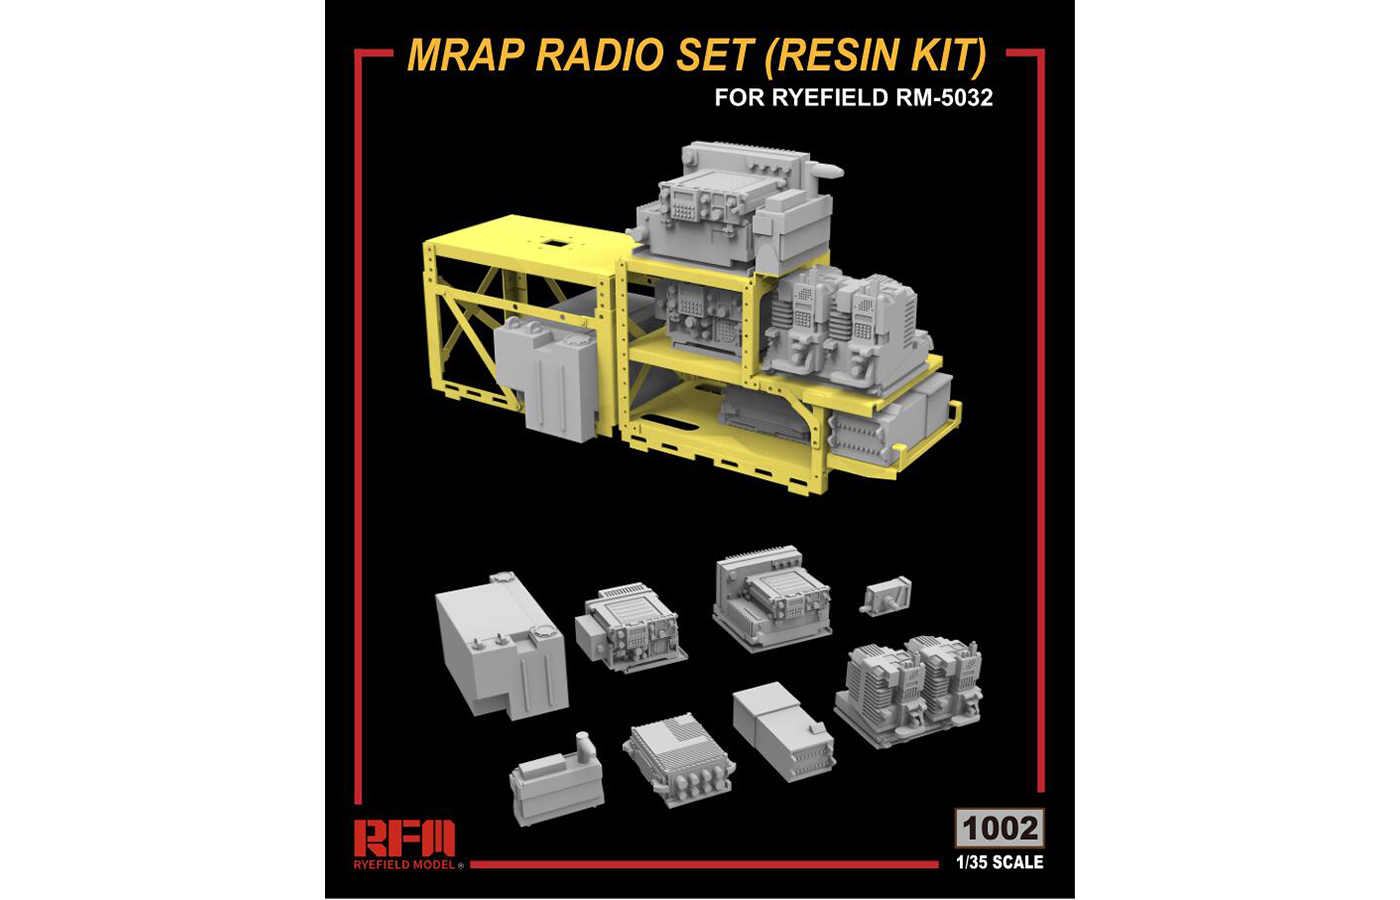 RM-1002 MRAP RADIO SET(RESIN KIT)